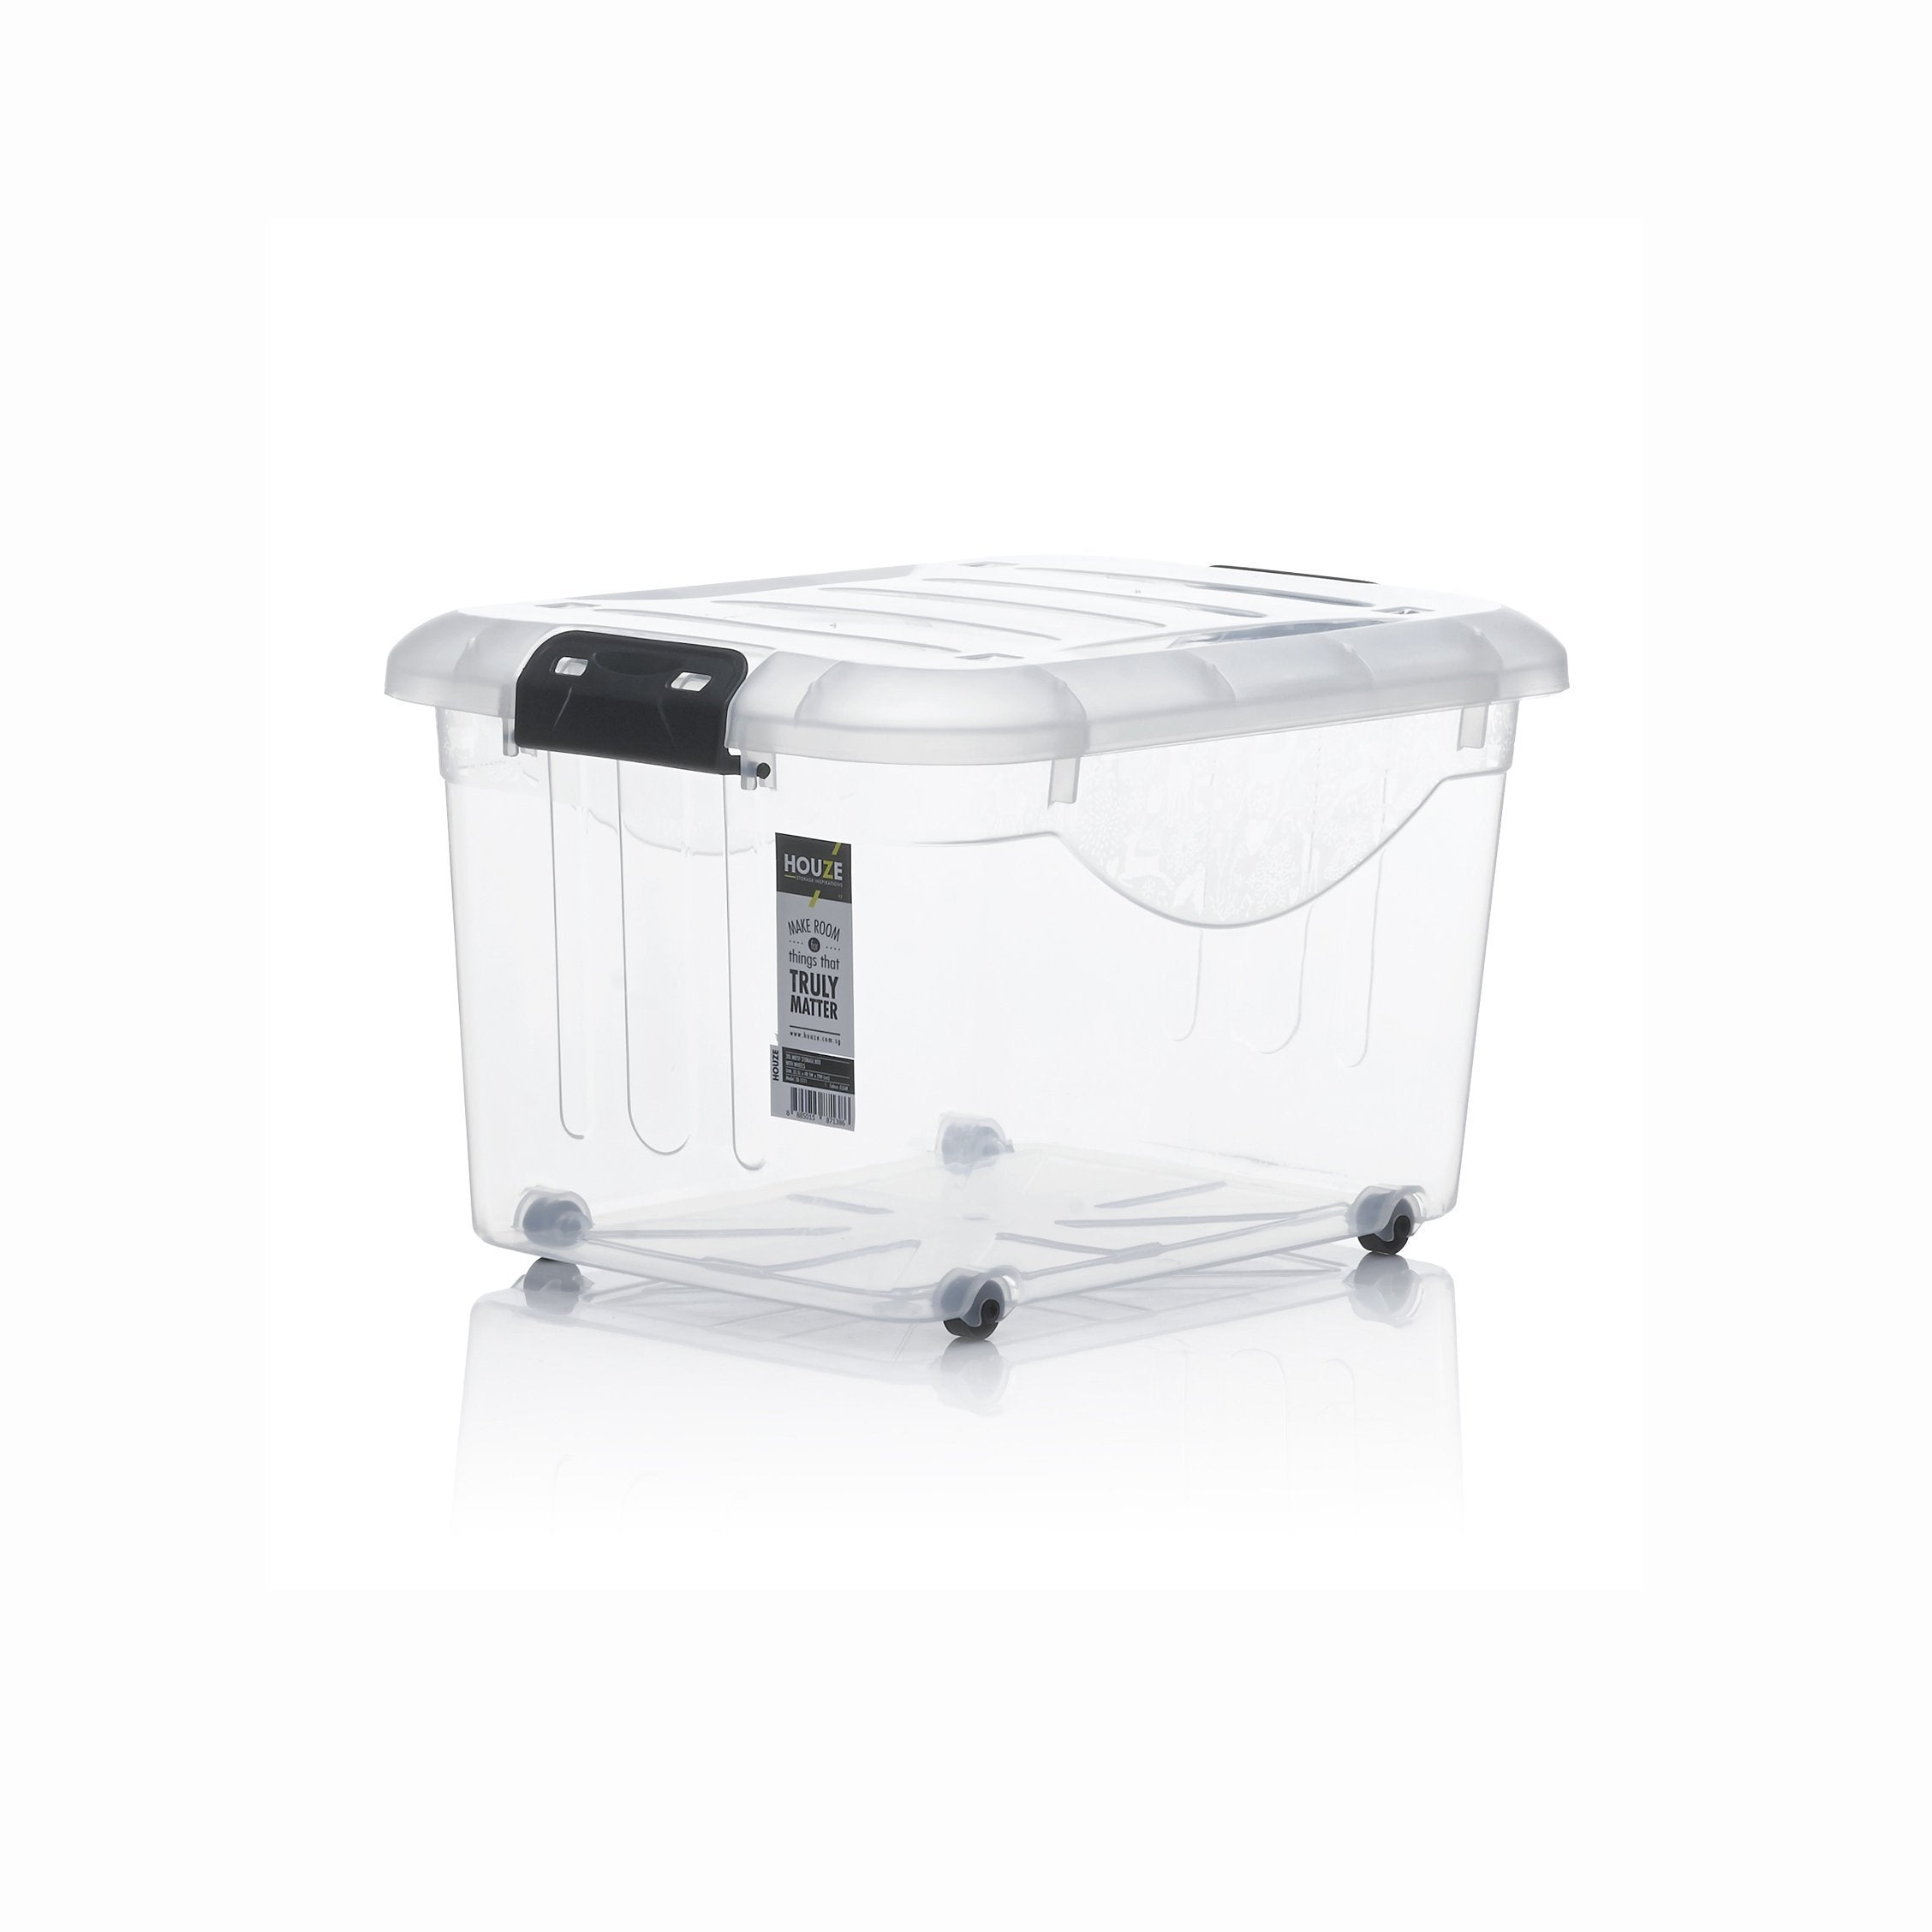 HOUZE 30L Motif Storage Box with Wheels - HOUZE - The Homeware Superstore